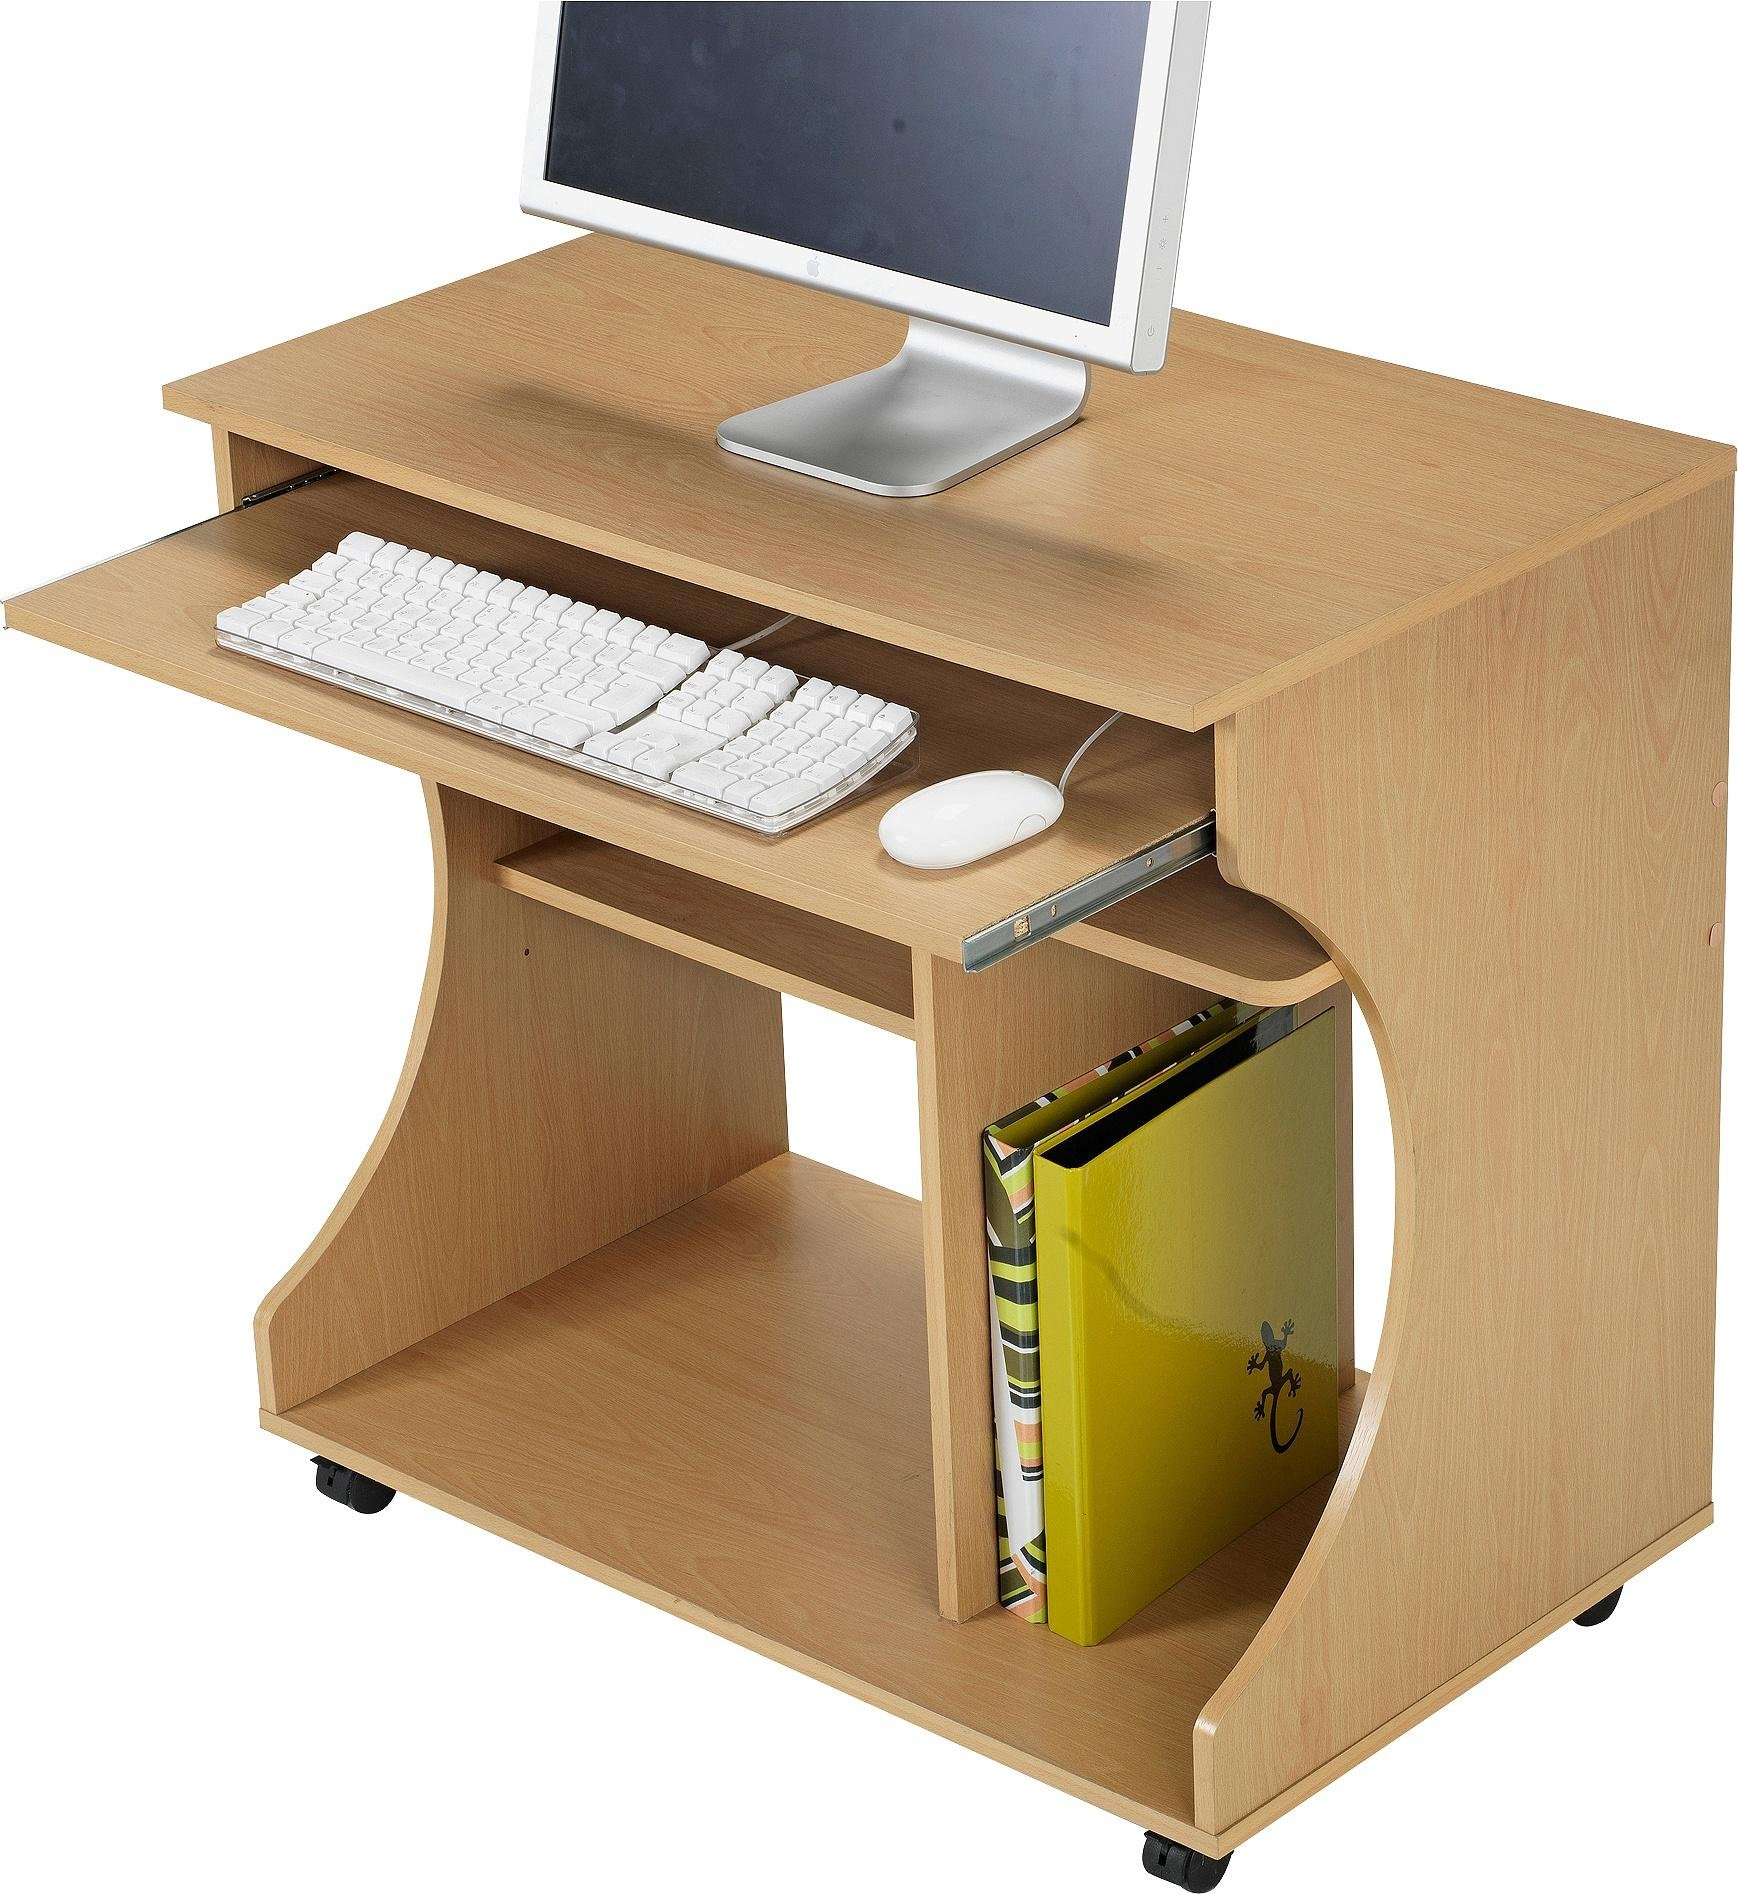 Buy HOME Curved Computer Desk Trolley - Beech Effect at Argos.co.uk - Your Online Shop for Desks ...